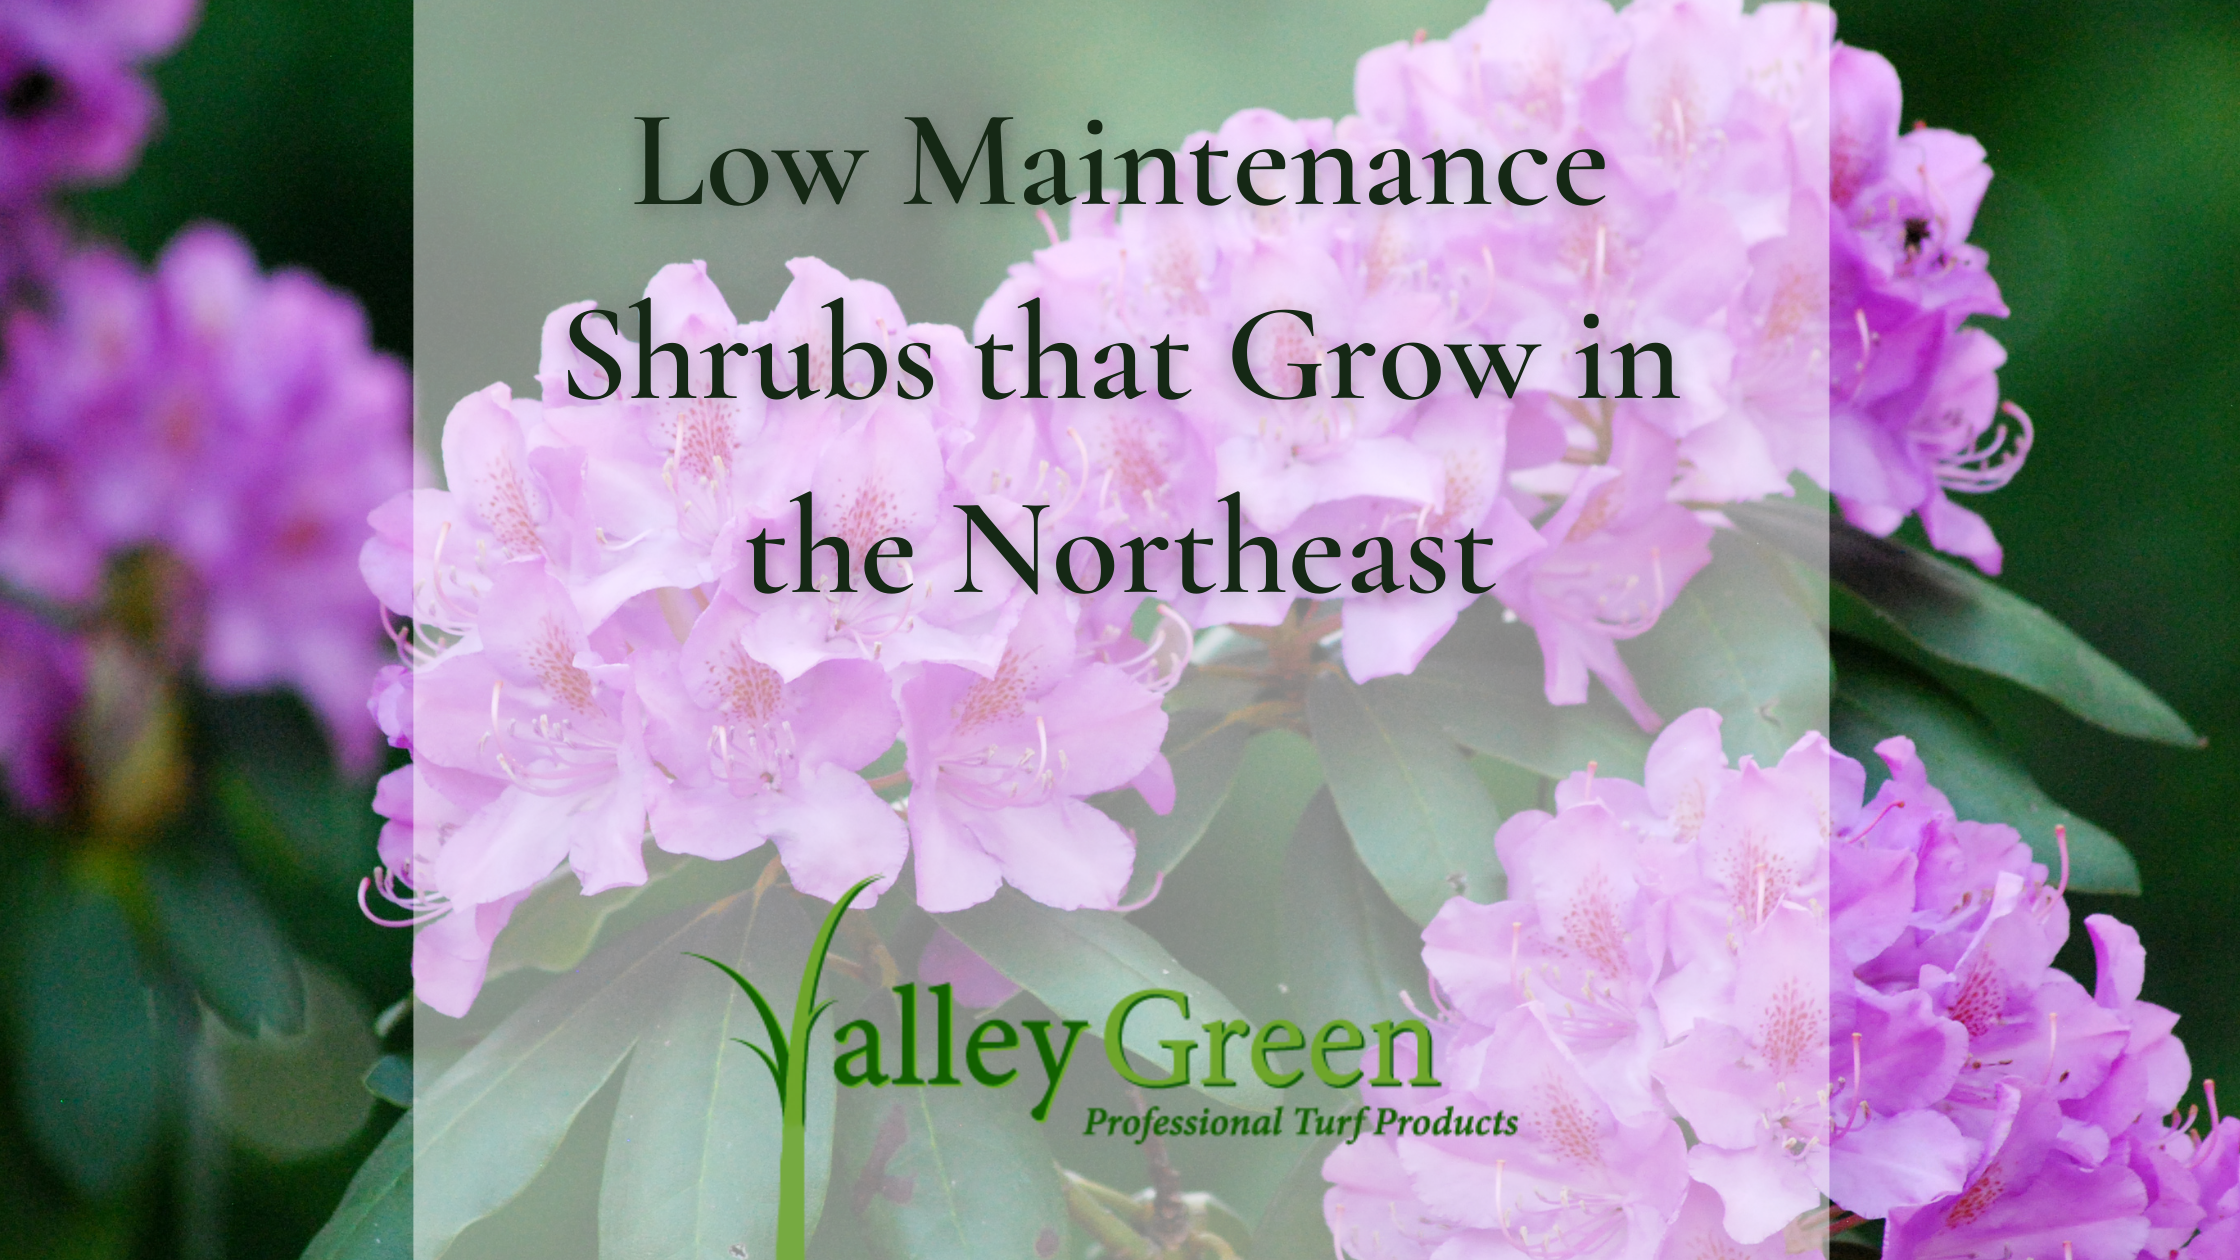 Low Maintenance Shrubs that Grow in the Northeast